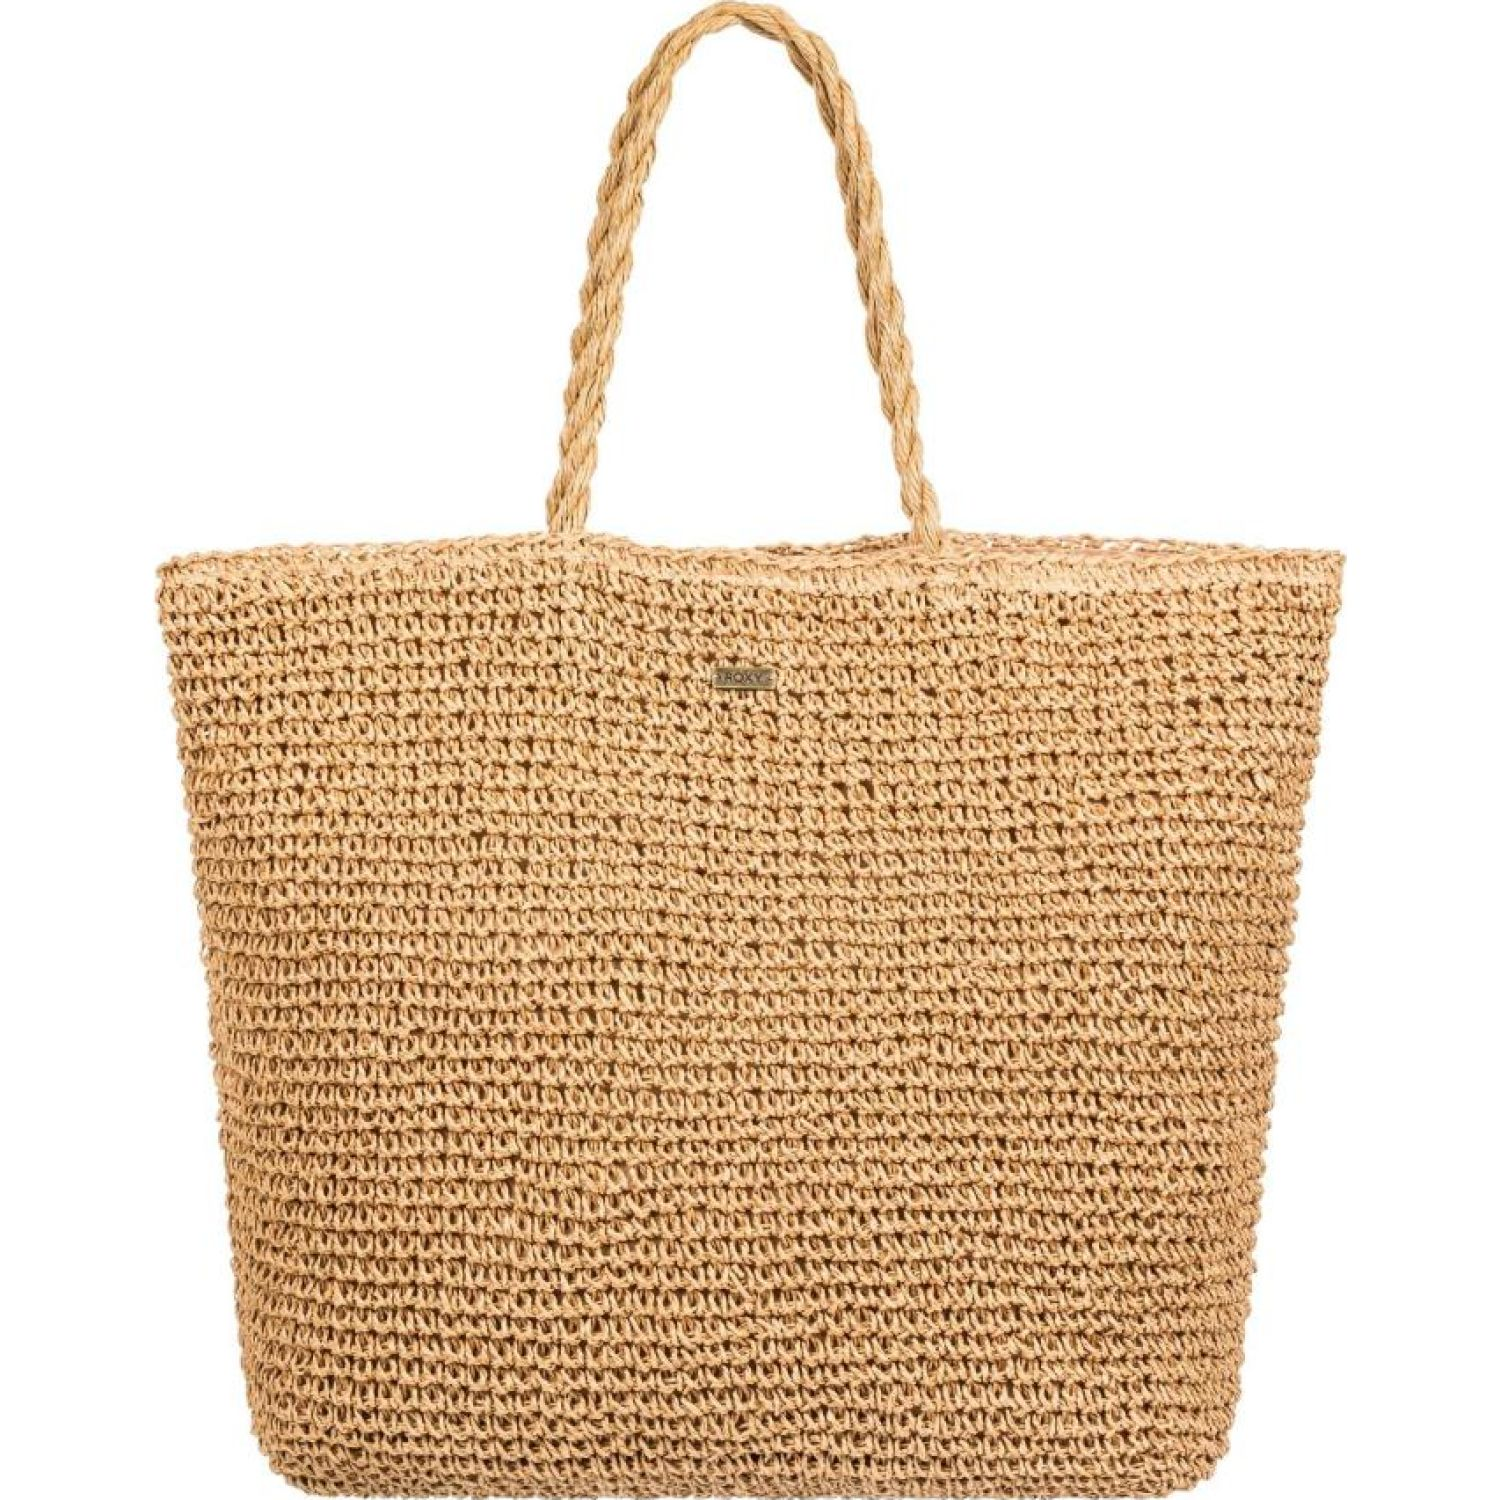 Roxy positive energy 24l Camel Totes